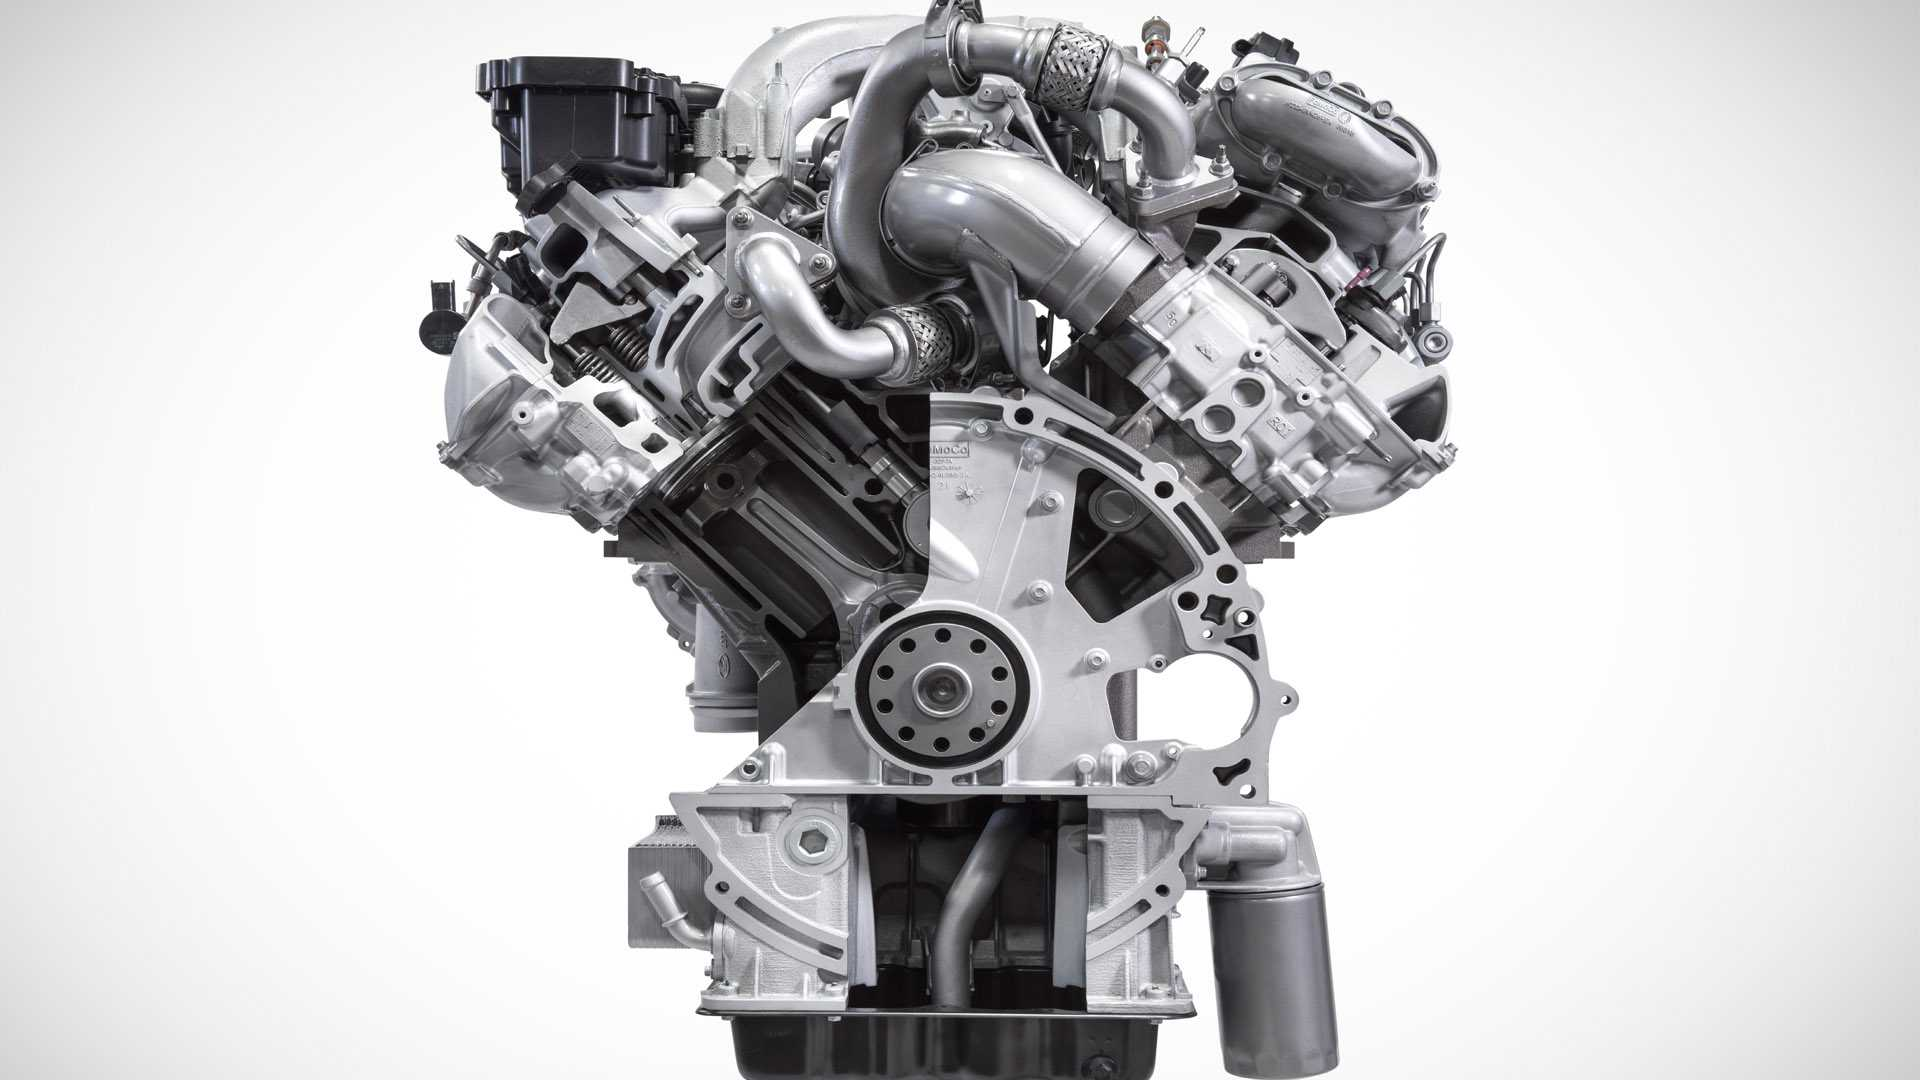 2020-ford-super-duty-powerstroke-diesel (1)